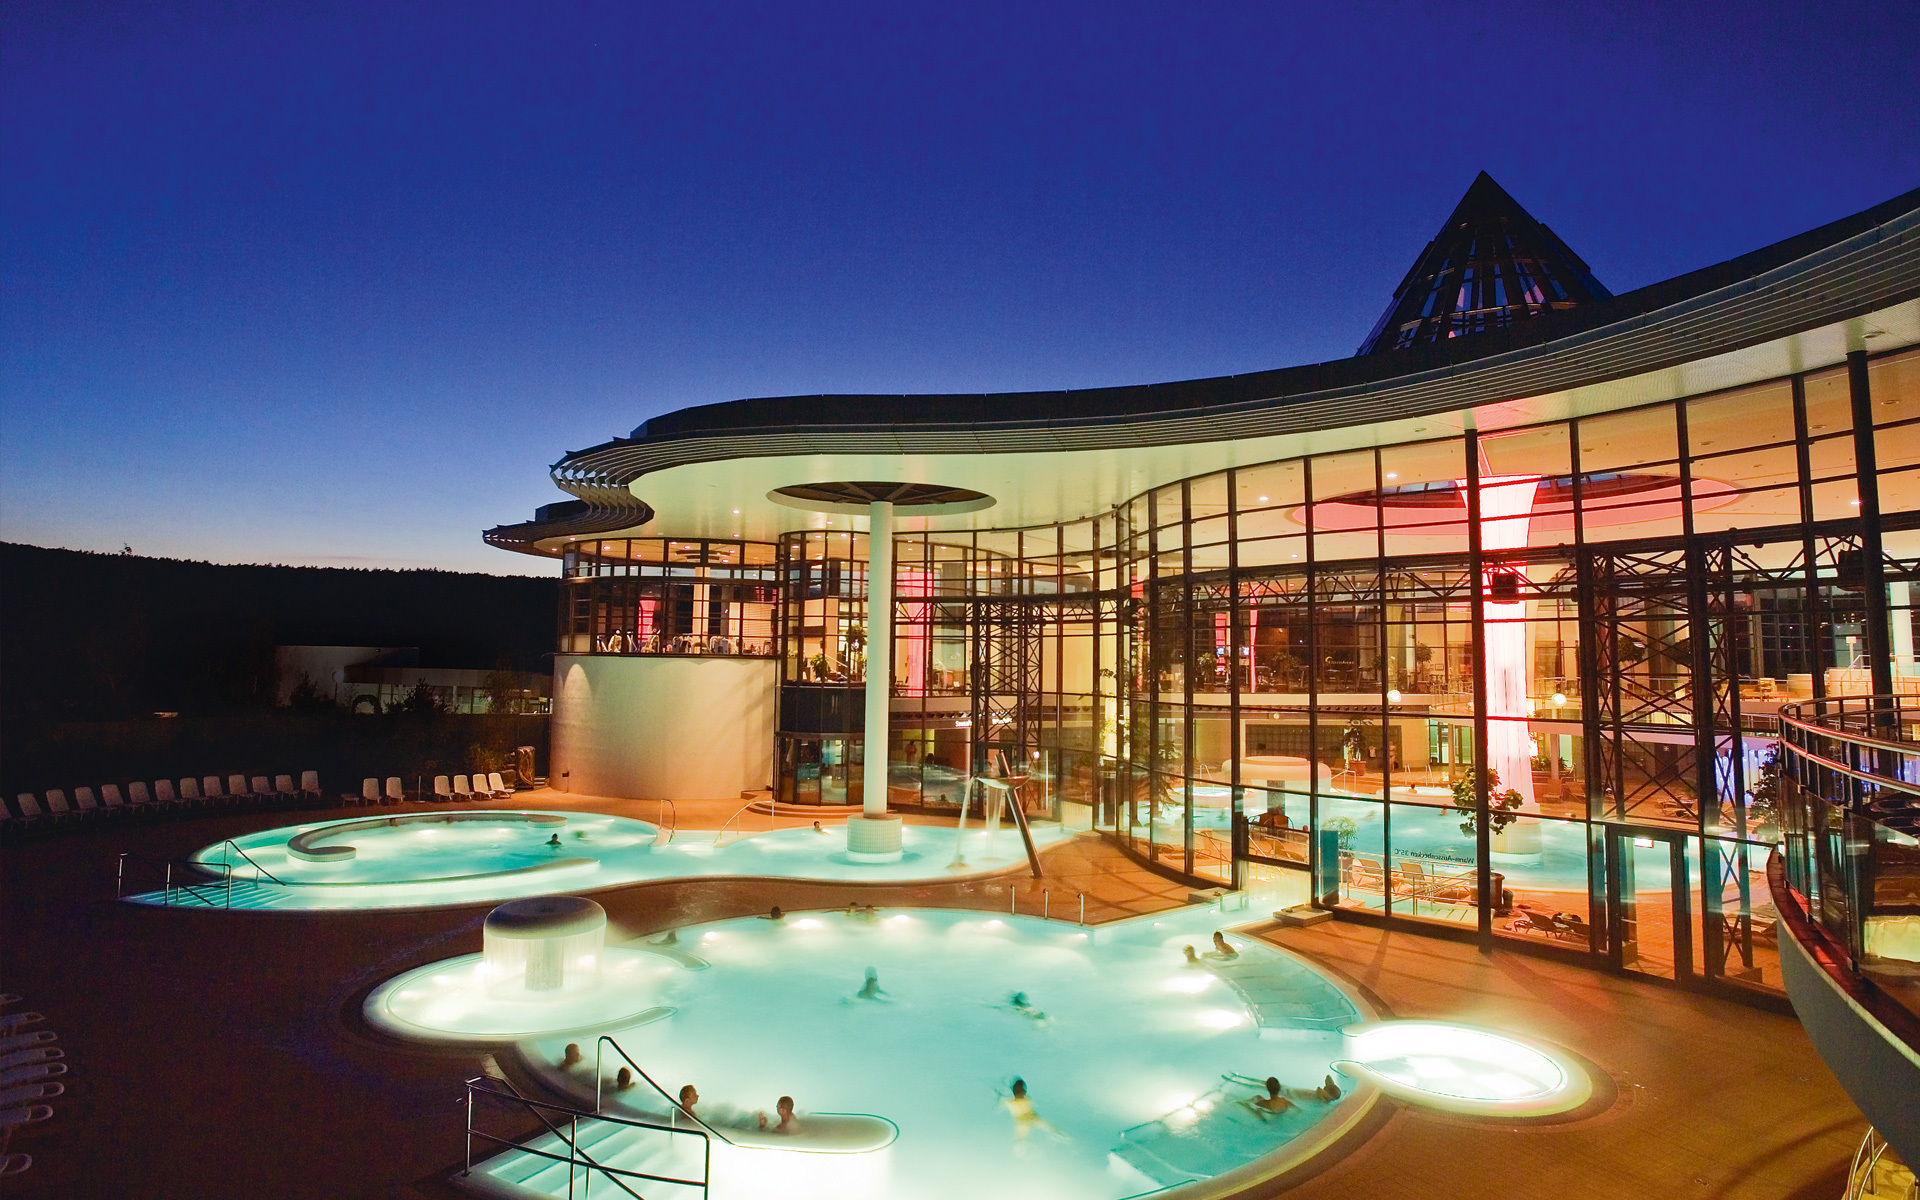 Bad Kissingen - Therme Kiss Salis | Bäderland Bayerische Rhön